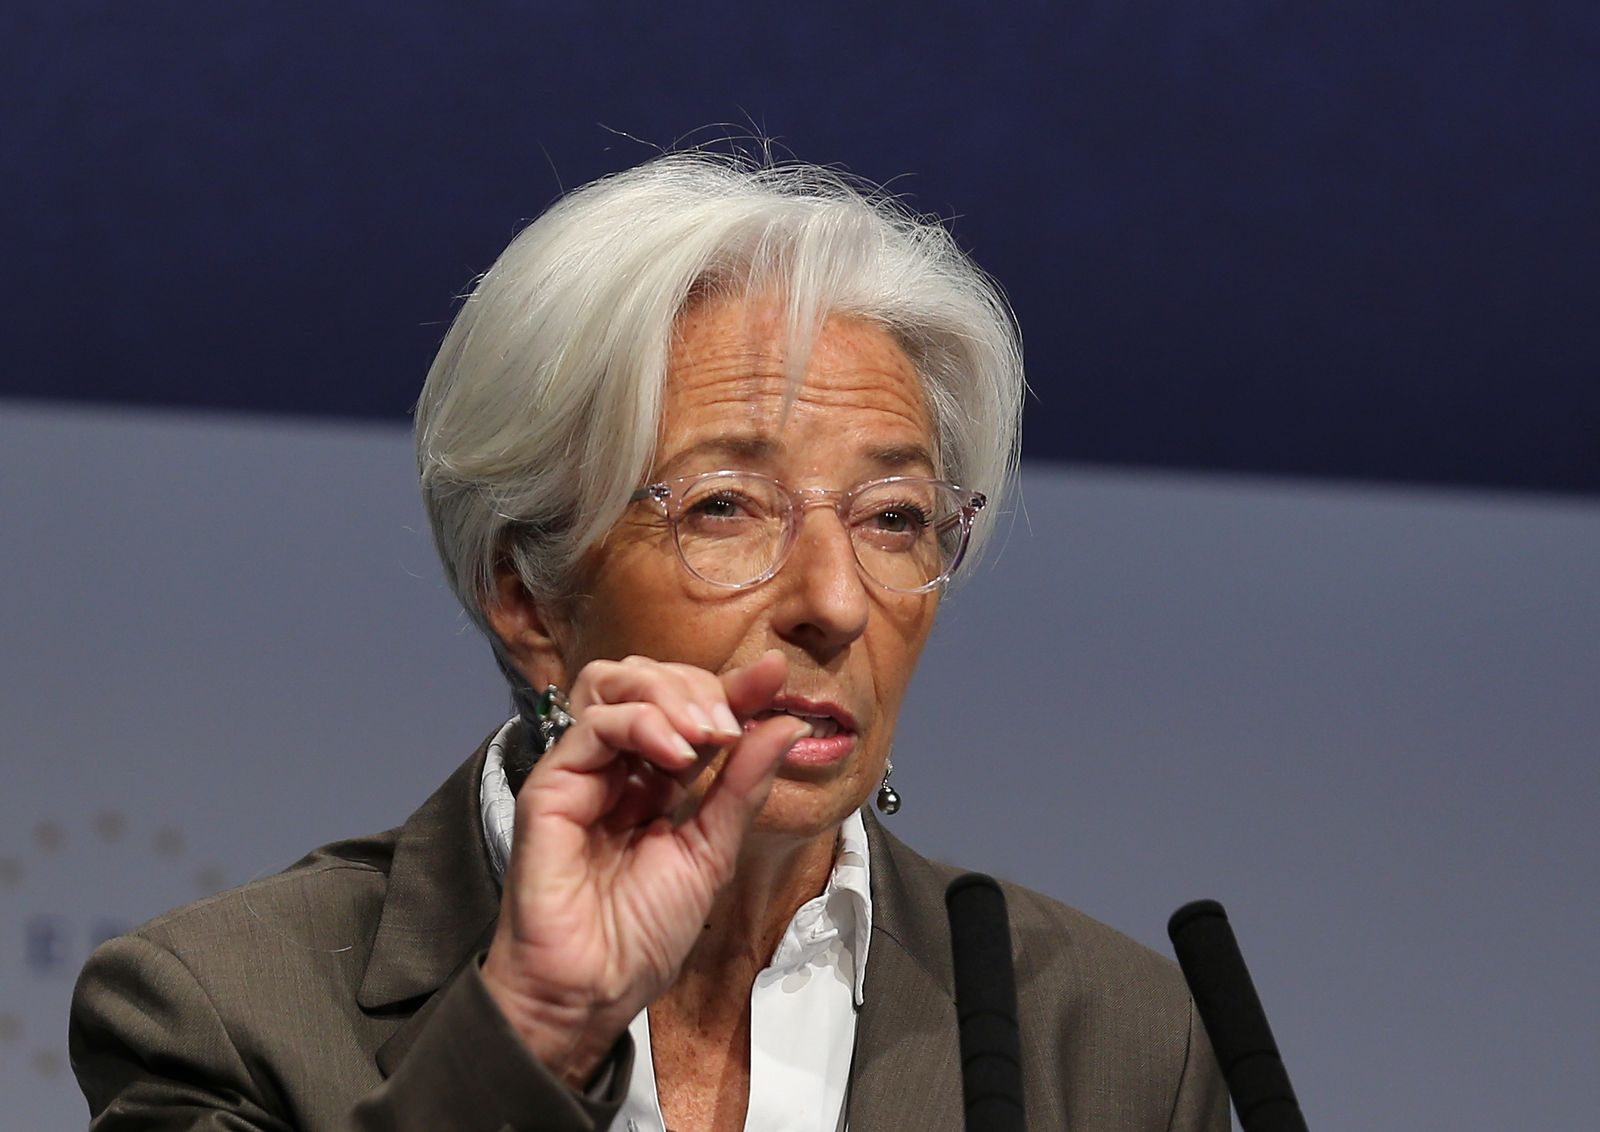 ECB-POLICY/LAGARDE